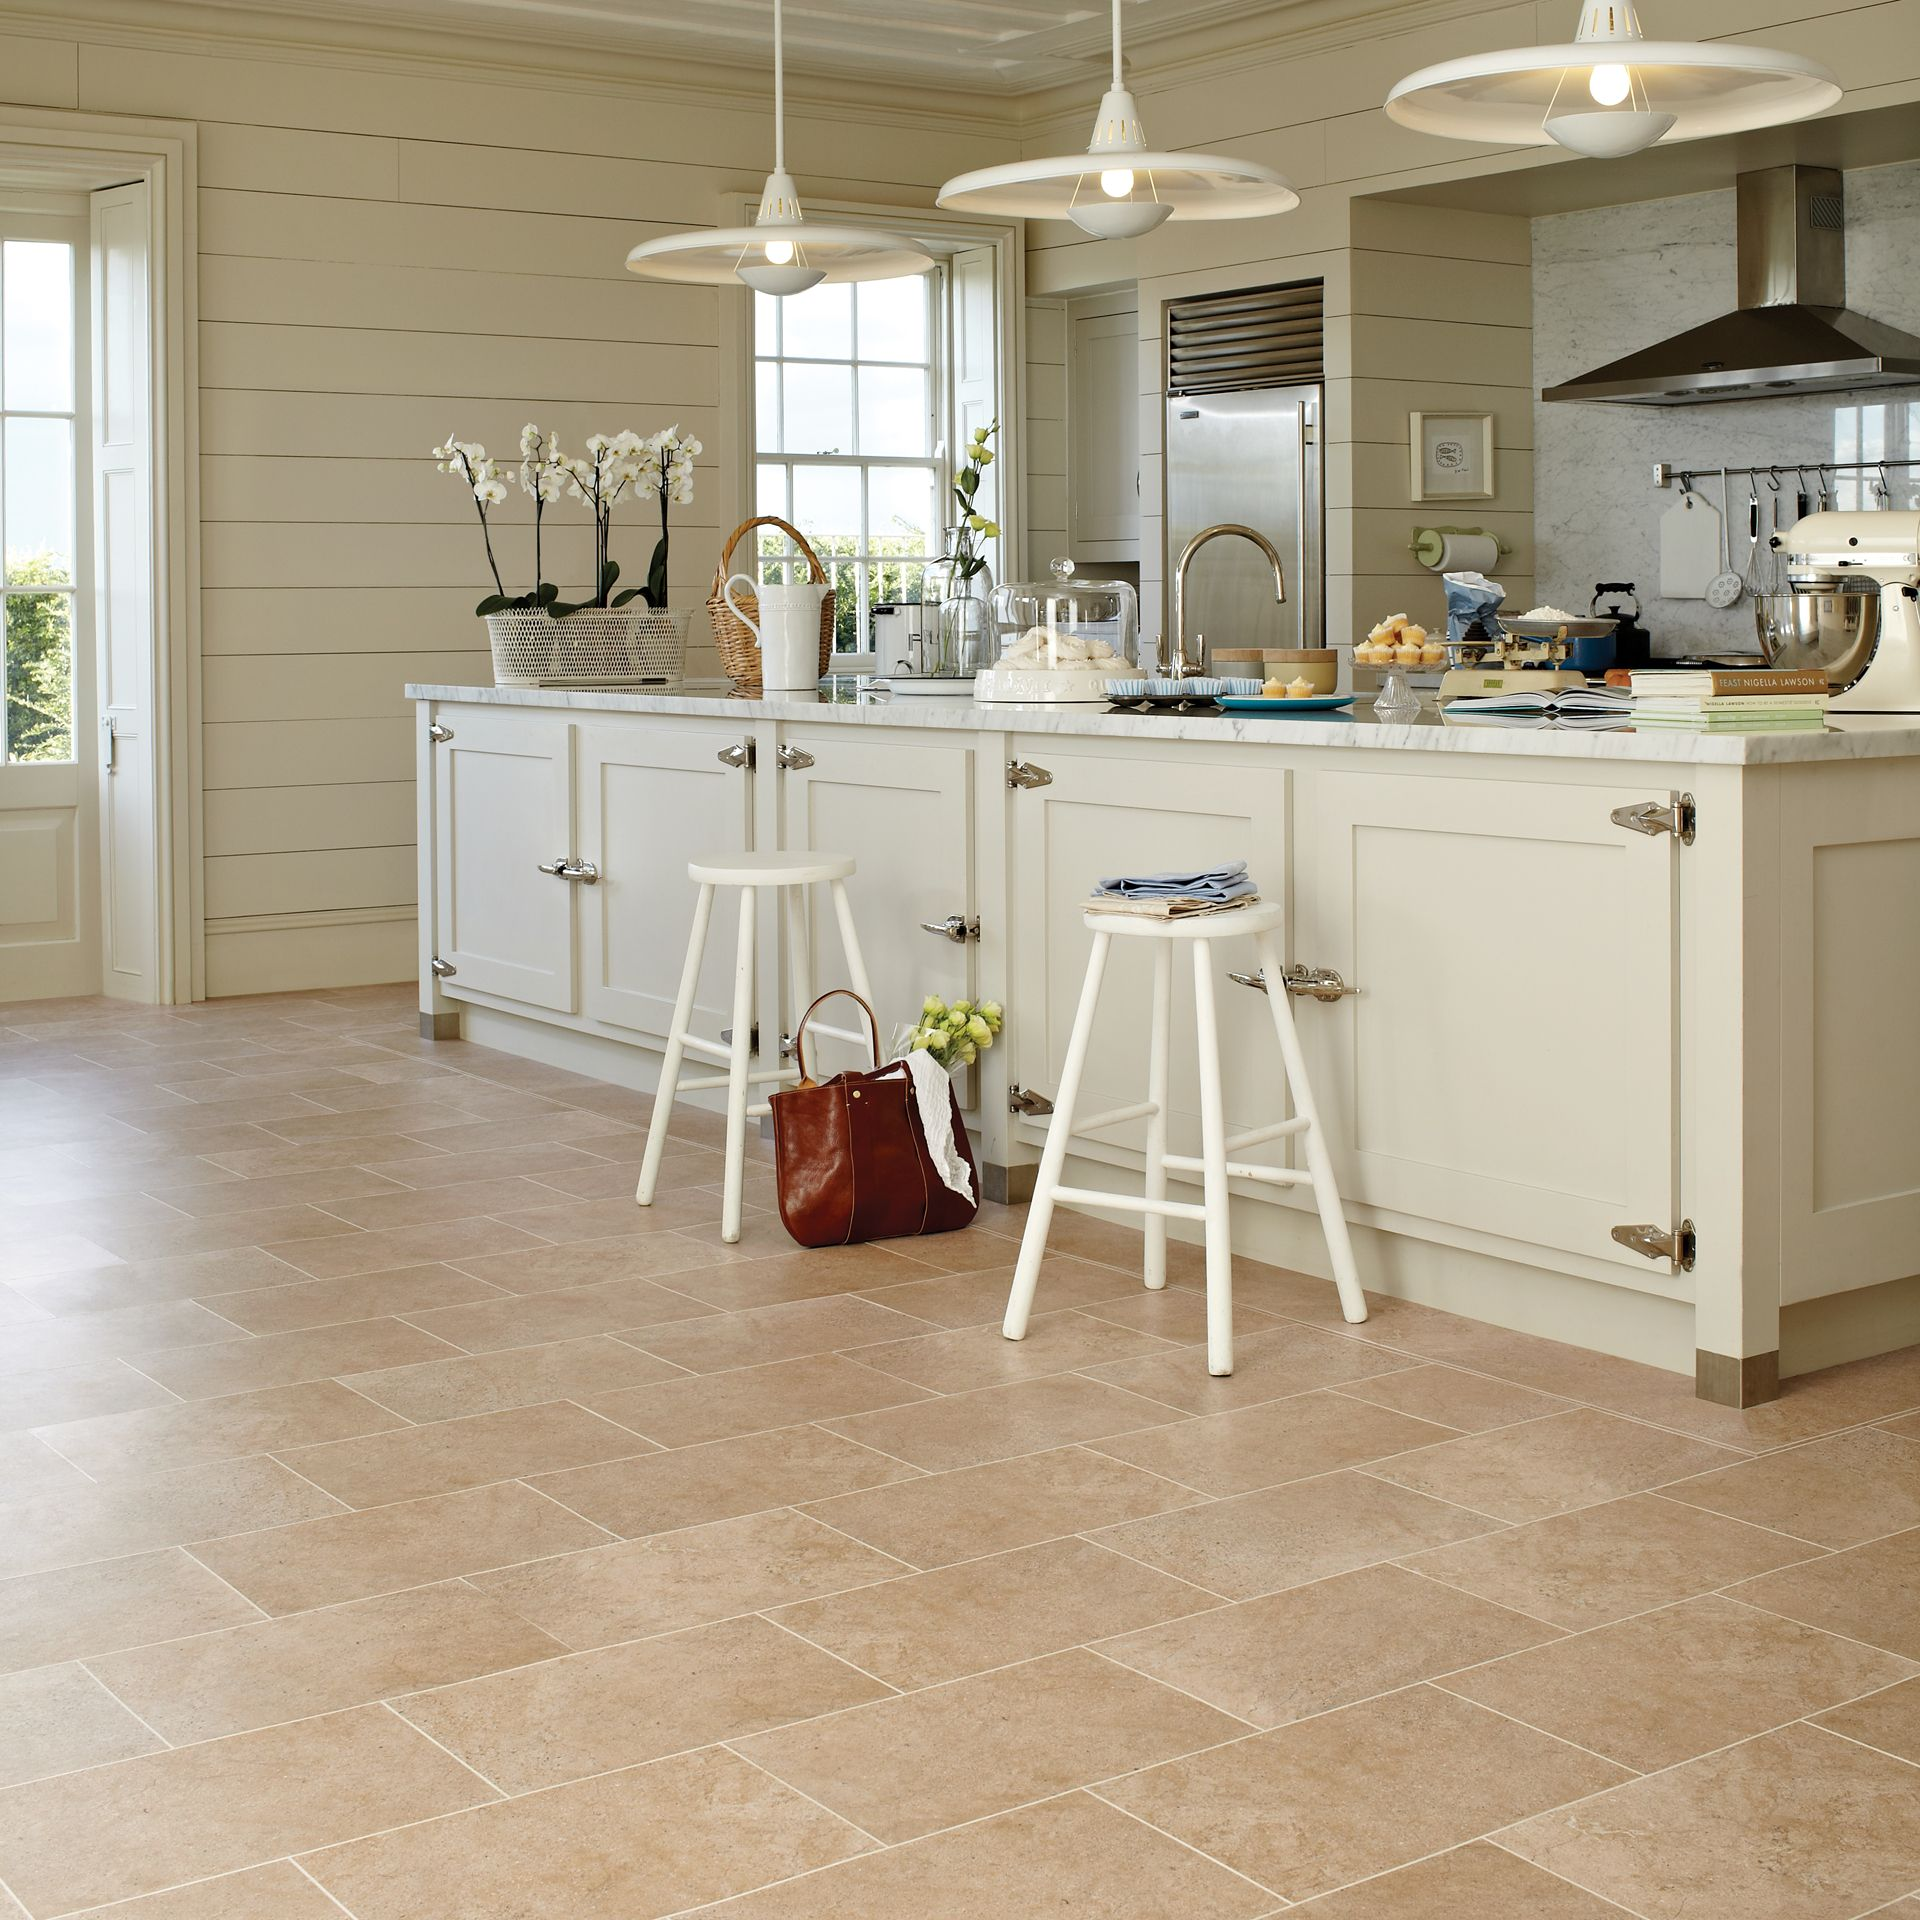 Stone Floors In Kitchen Natural Stone Effect Vinyl Floor Tiles Kitchen Pinterest